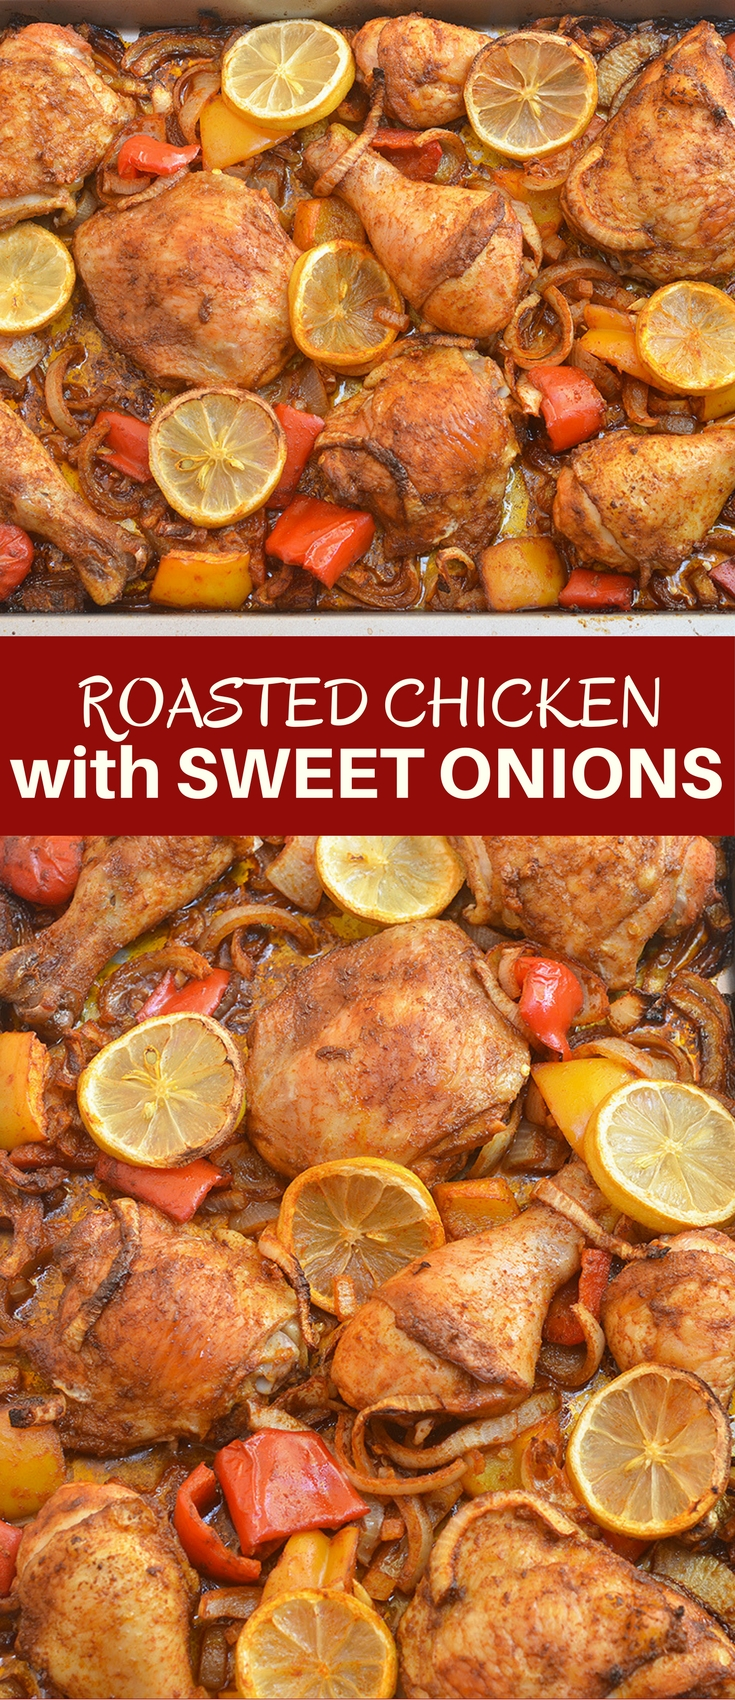 Roasted Chicken with Sweet Onions is an easy weeknight dinner meal the whole family will love! This Peruvian-style chicken is moist, juicy and loaded with big flavors!